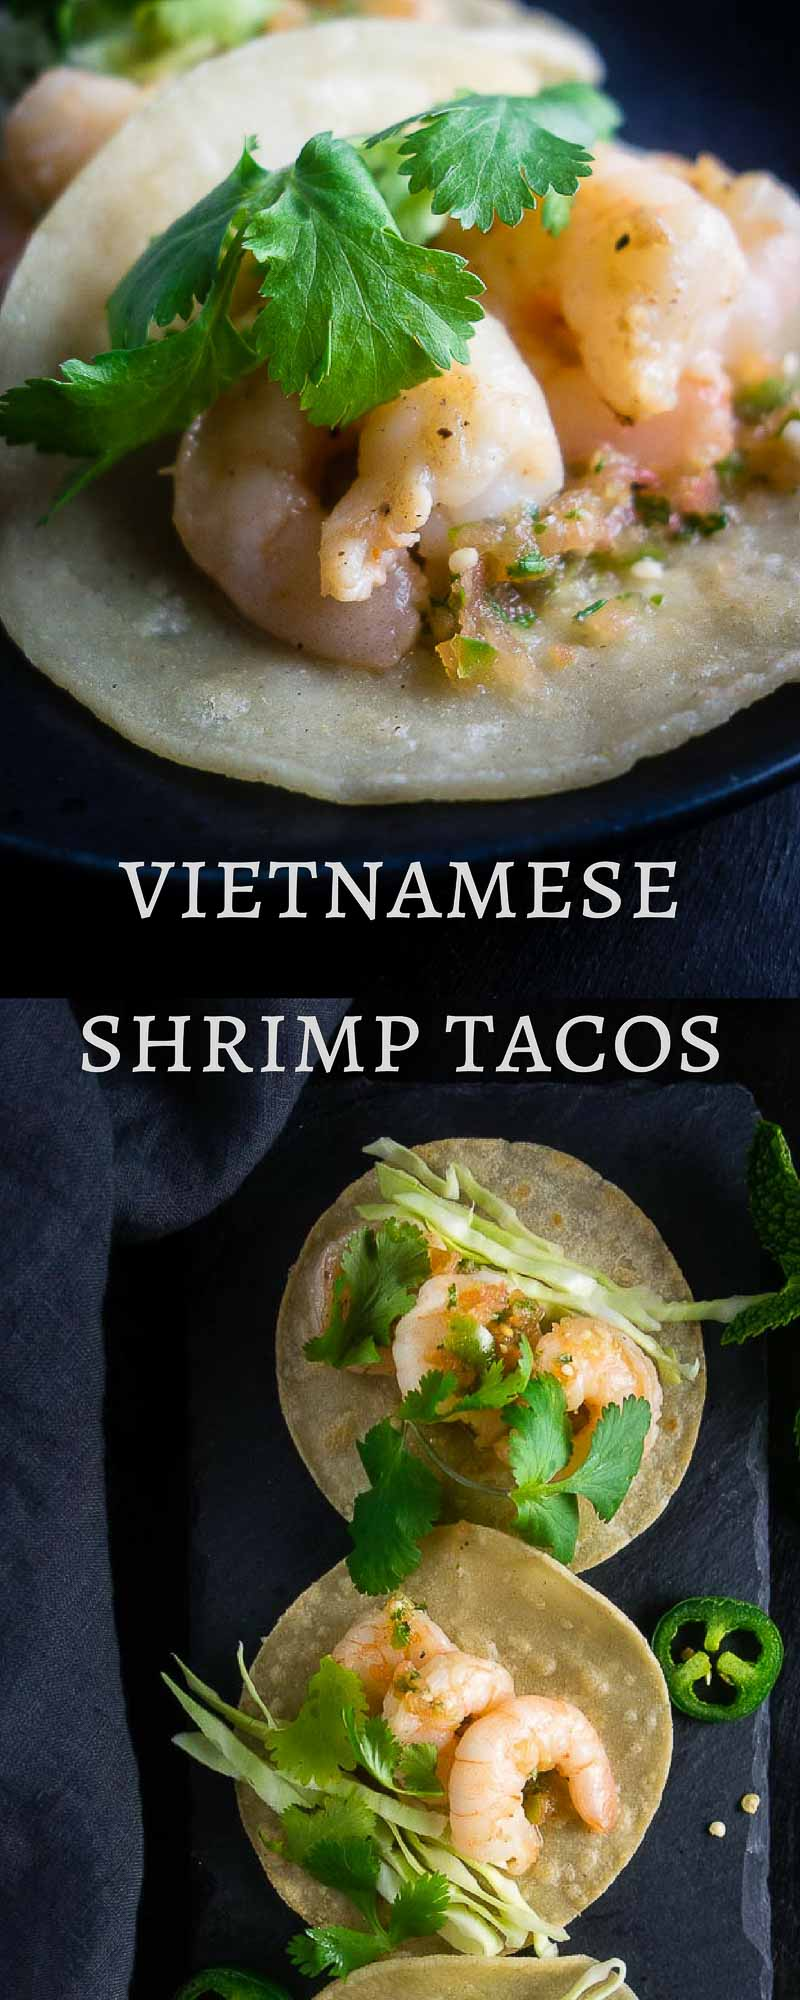 These Vietnamese Shrimp Street Tacos are packed full of light and fresh umami flavors, then served with fried tortillas and the BEST fresh homemade Vietnamese salsa!shrimp banh mi street tacos | vietnamese banh mi tacos | vietnamese inspired tacos | vietnamese mexican fusion | banh mi shrimp tacos | homemade salsa | fish sauce recipes | shrimp recipes | taco recipes | street tacos | spicy salsa | fresh salsa | tomatillo salsa | vietnamese recipes